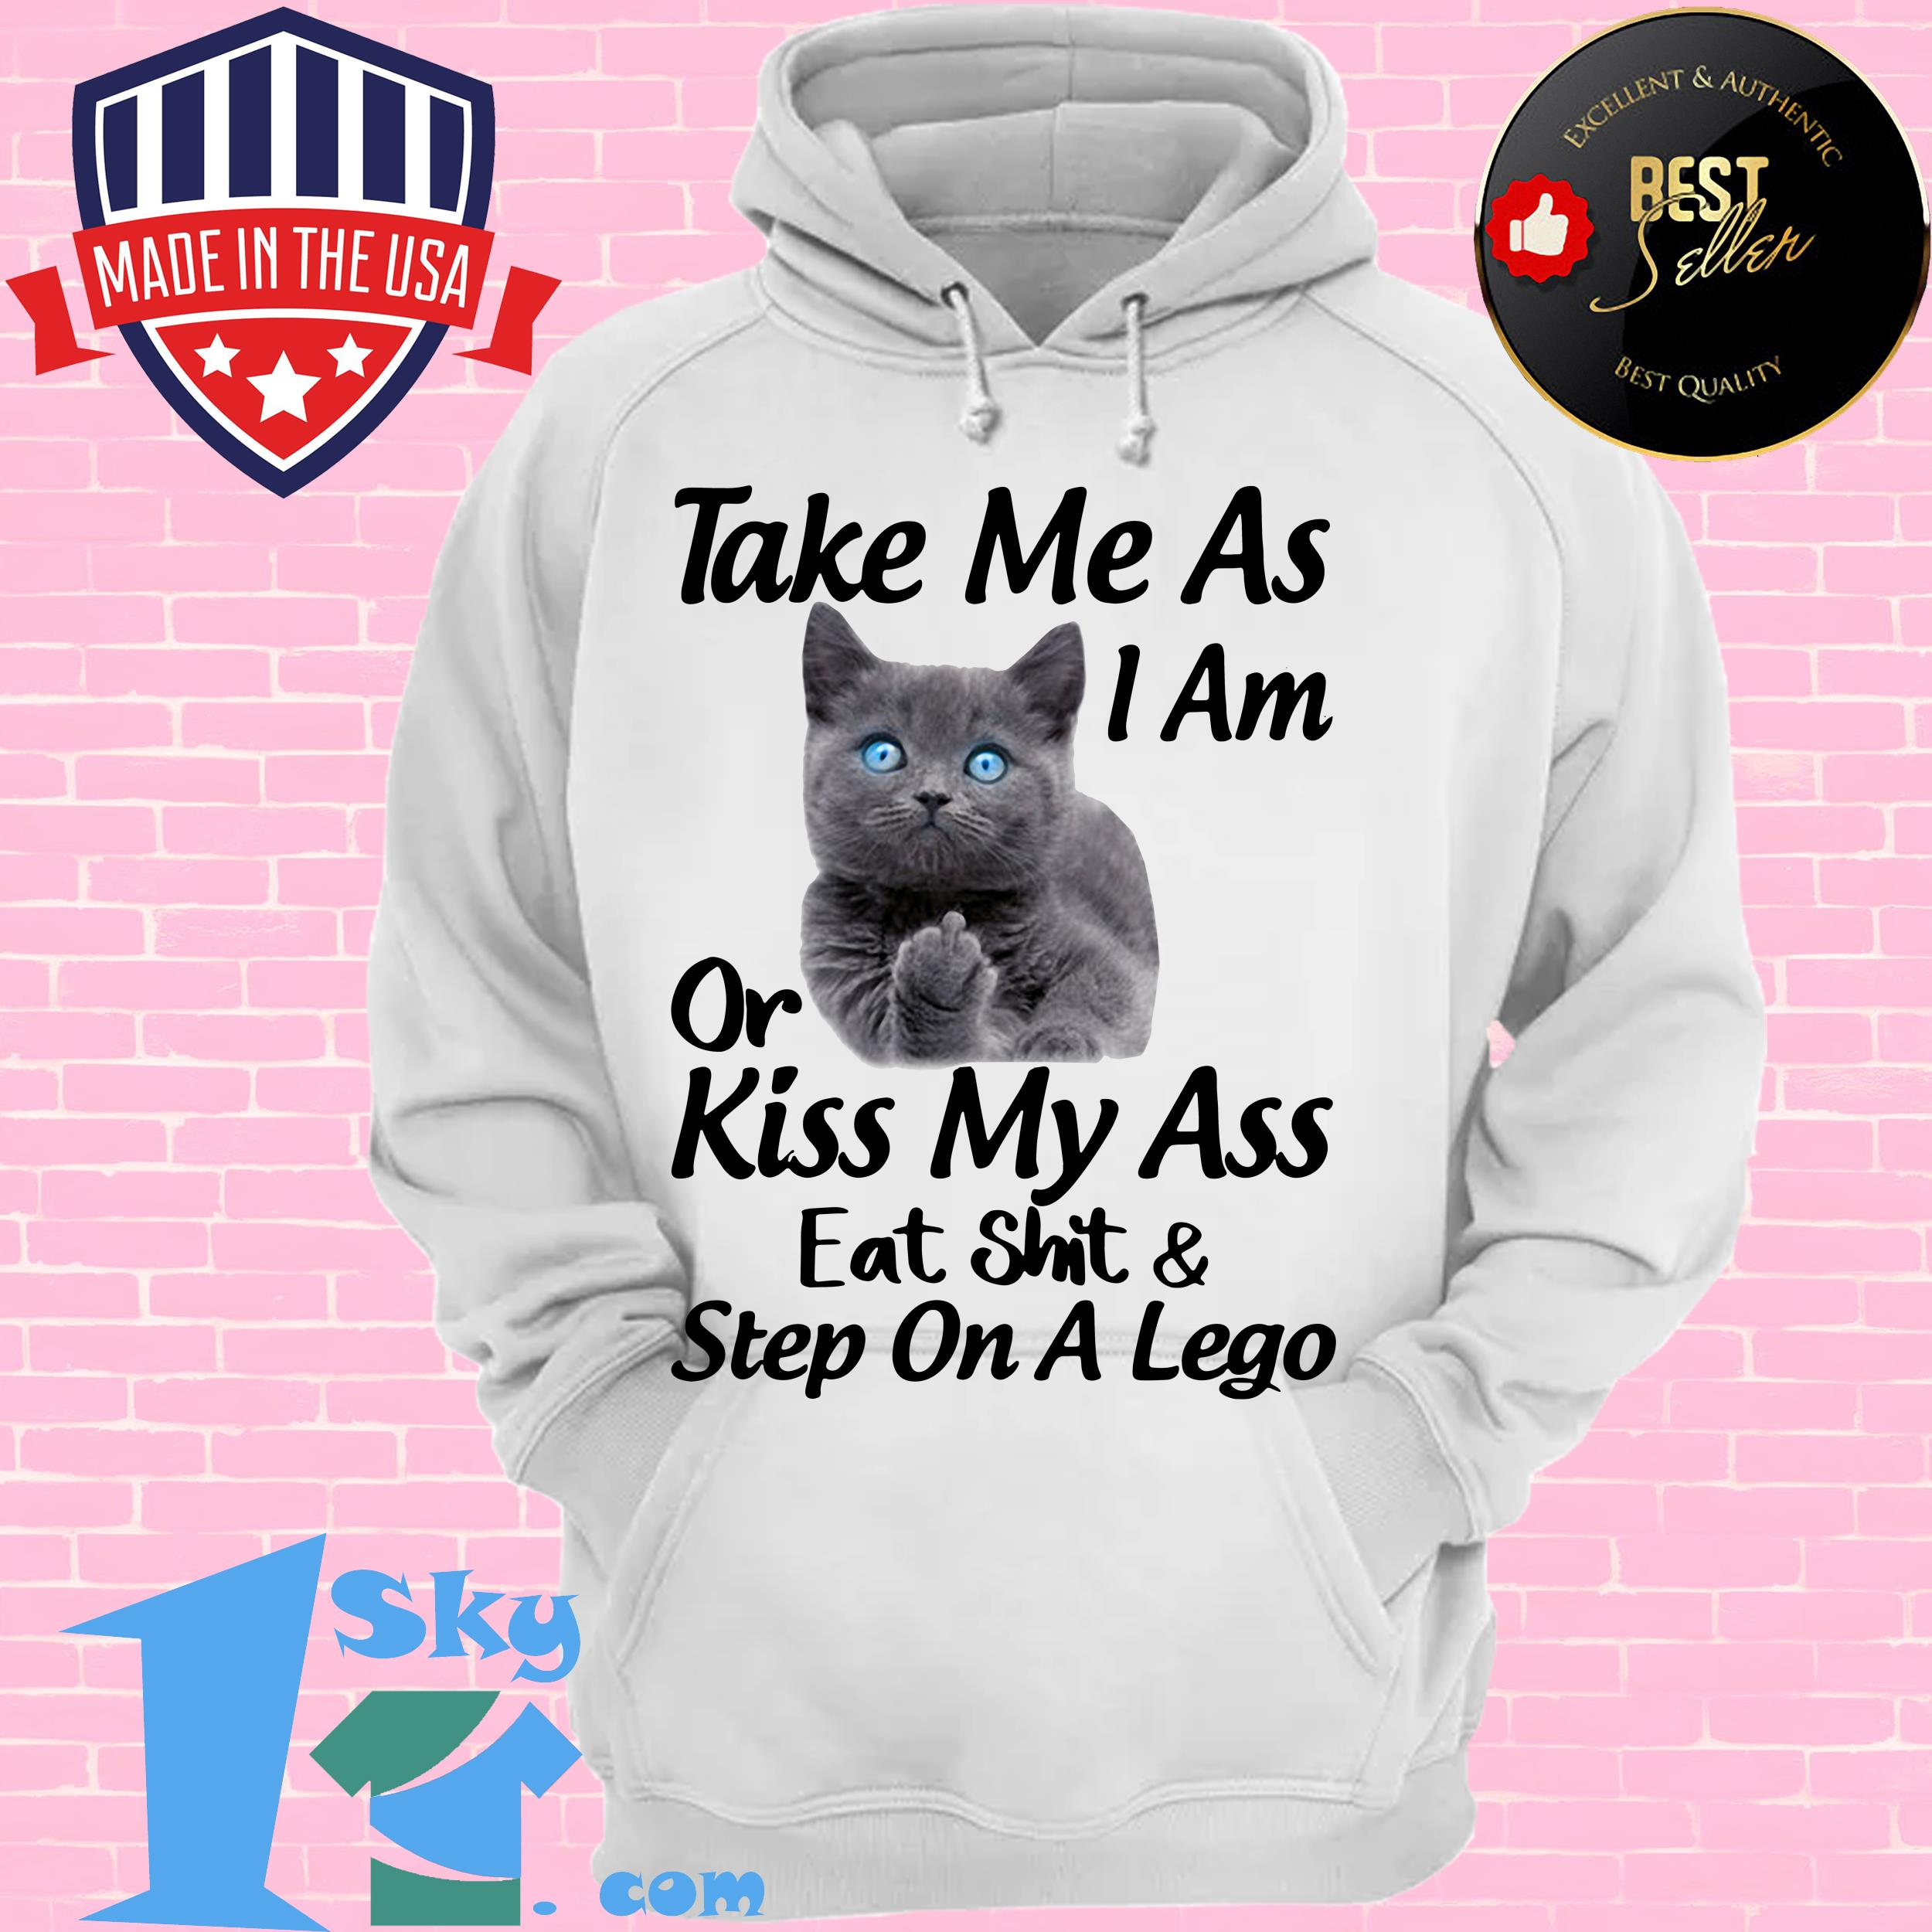 cat take me as i am or kiss my ass eat and step on a lego hoodie - Cat Take Me As I Am Or Kiss My Ass Eat And Step On A Lego shirt